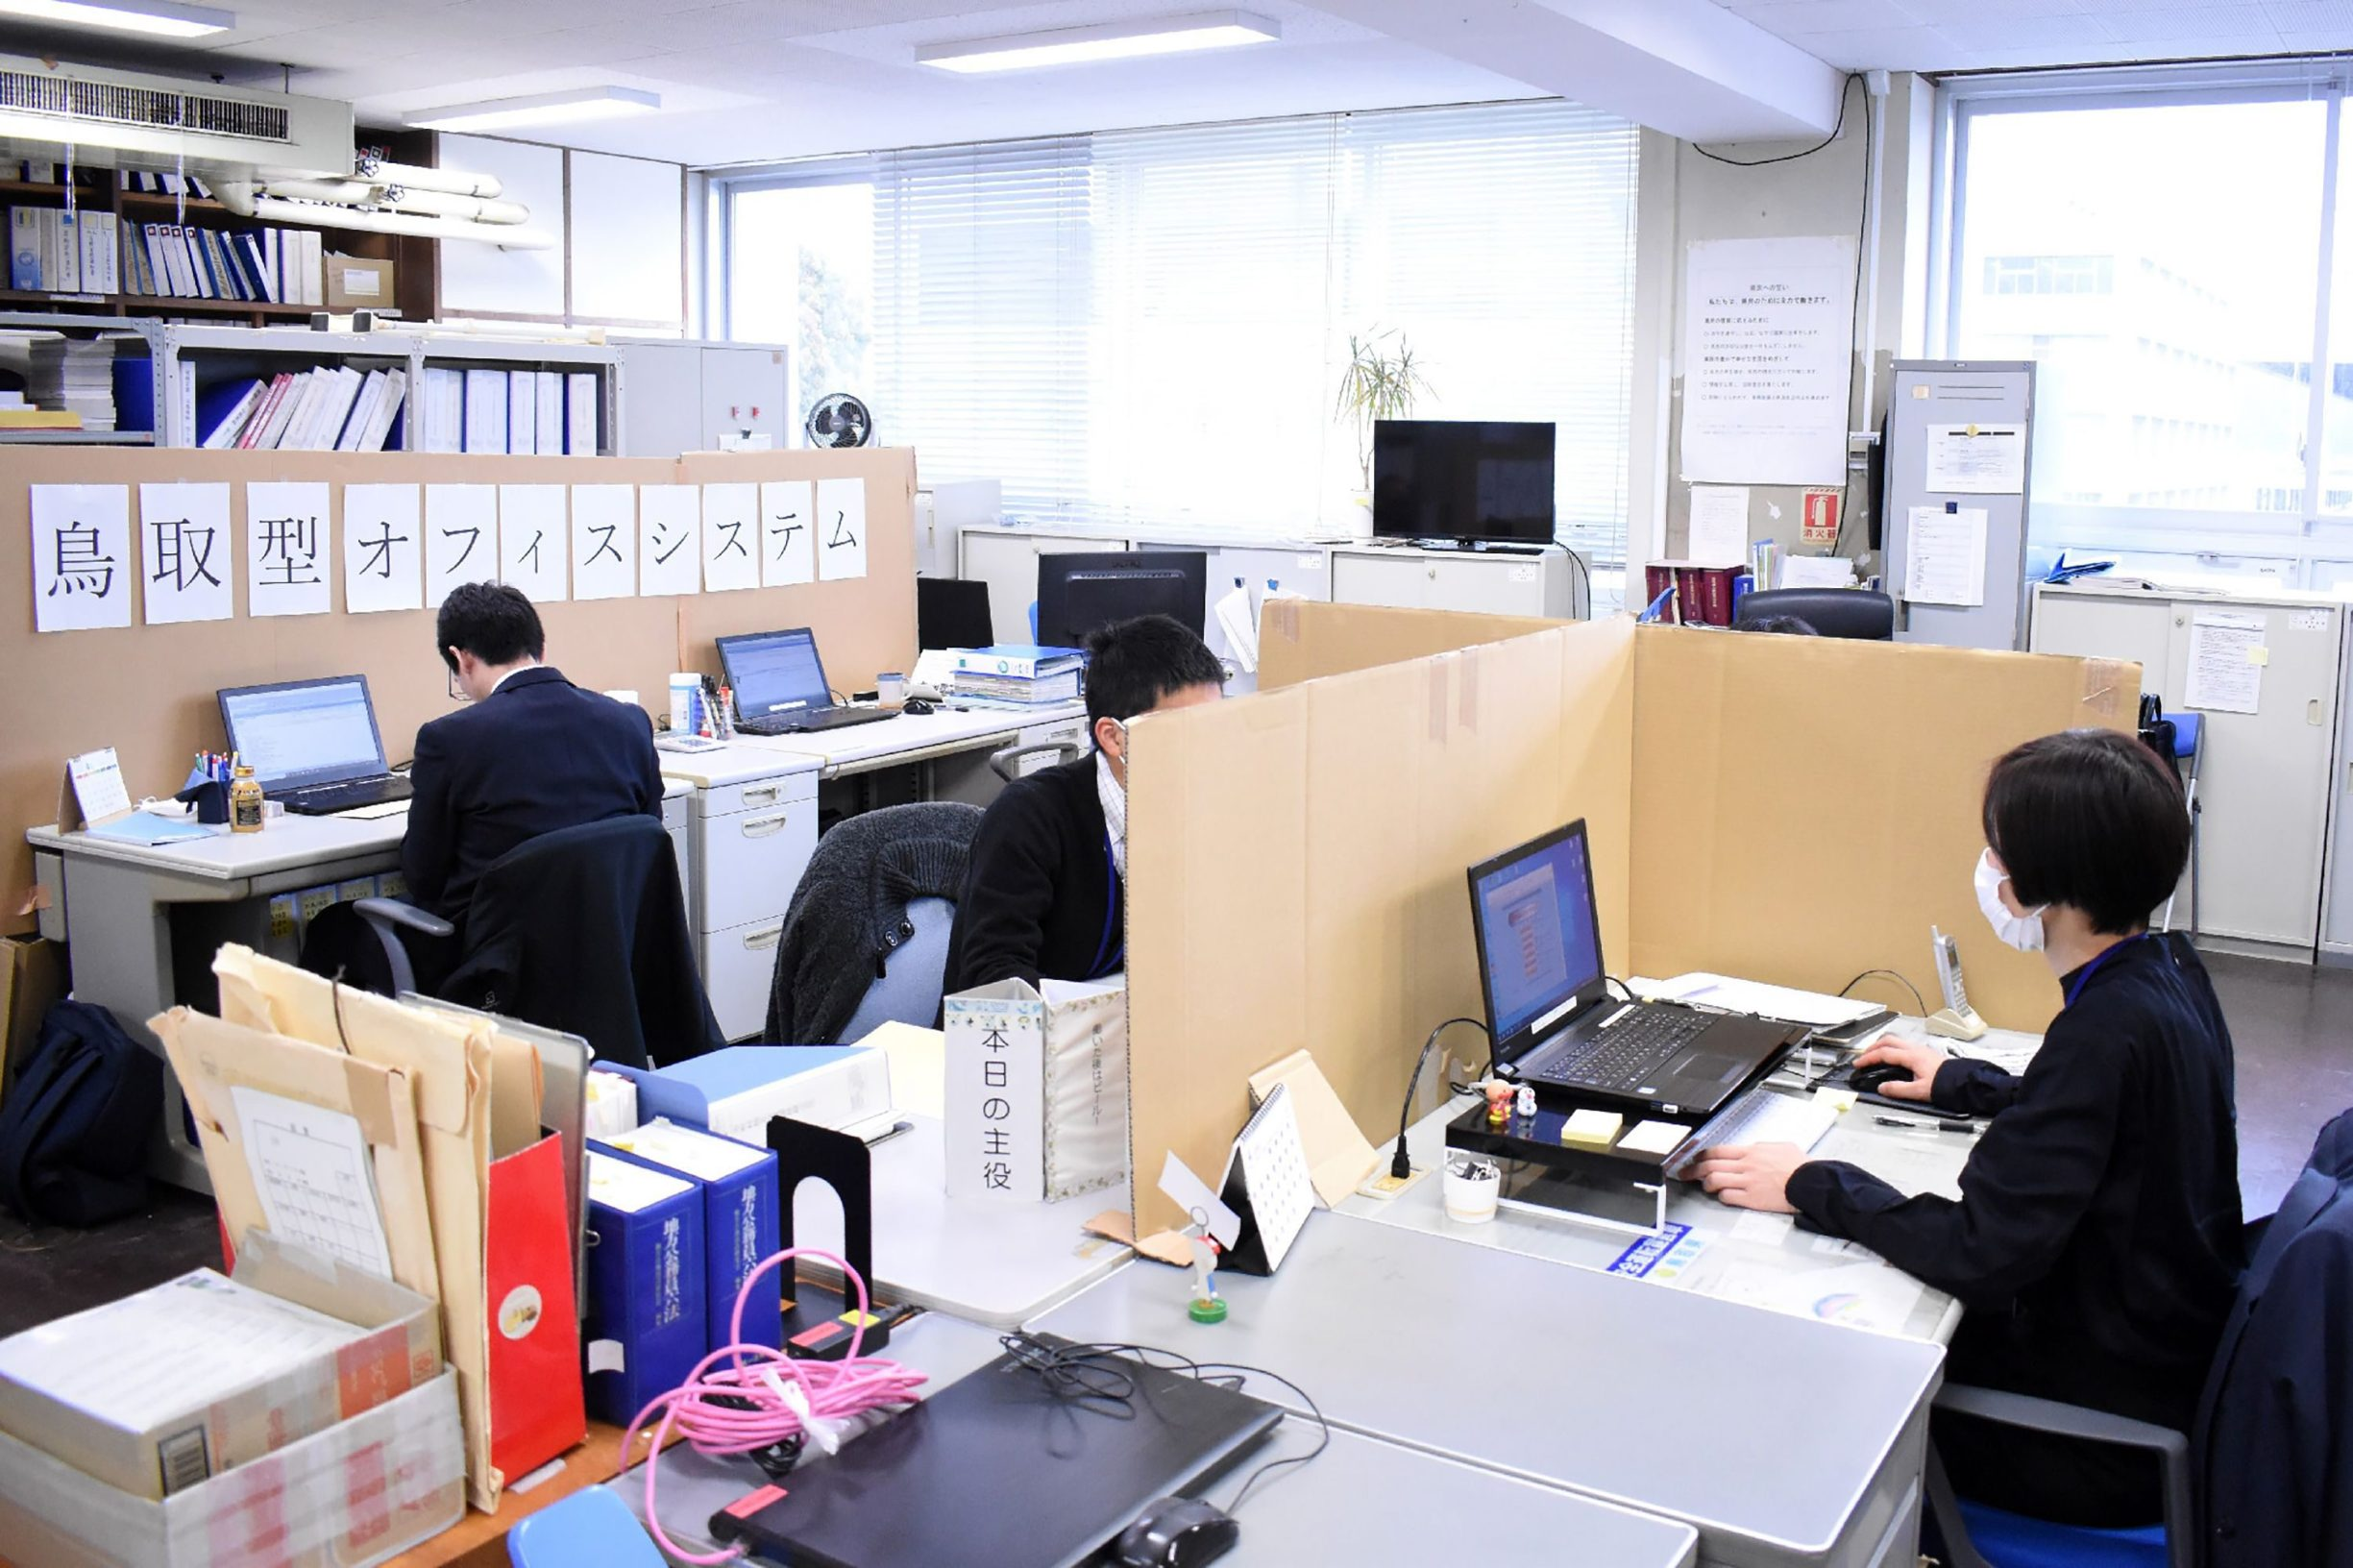 In this picture taken on April 1, 2020 office employees use cardboard partitions to separate their desks amid concerns over the COVID-19 coronavirus, at the prefectural government office in Tottori, western Japan. - As of April 1, Japan had registered 2,178 cases of the new coronavirus, with 57 deaths. (Photo by STR / JIJI PRESS / AFP) / Japan OUT